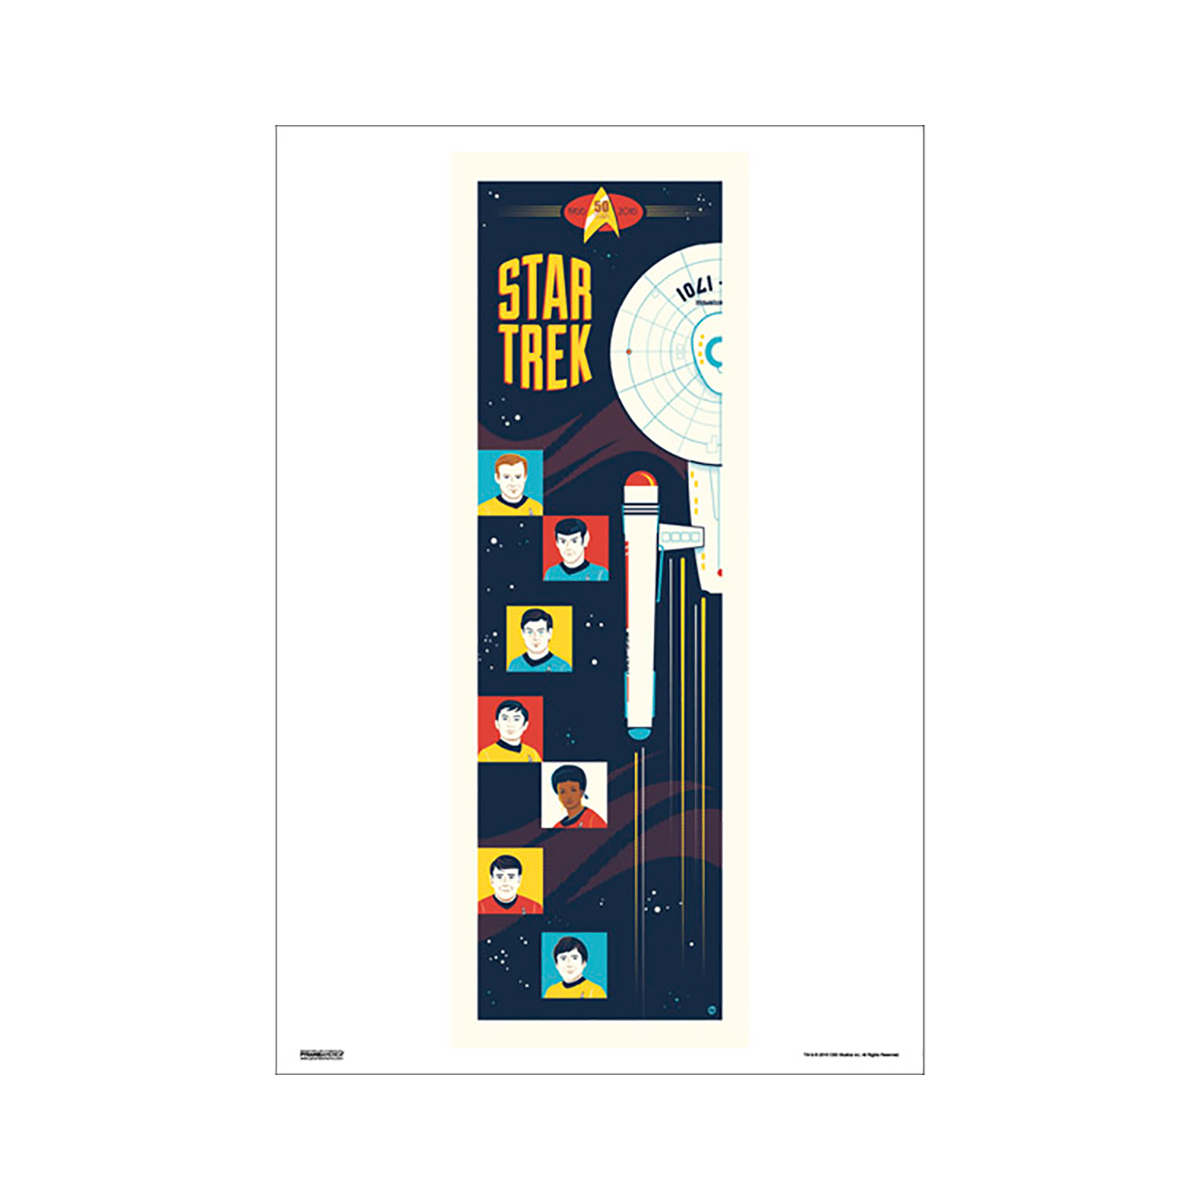 Star Trek 50th Art Collection Strange New Worlds by Dave Perillo Poster [13 x 9]